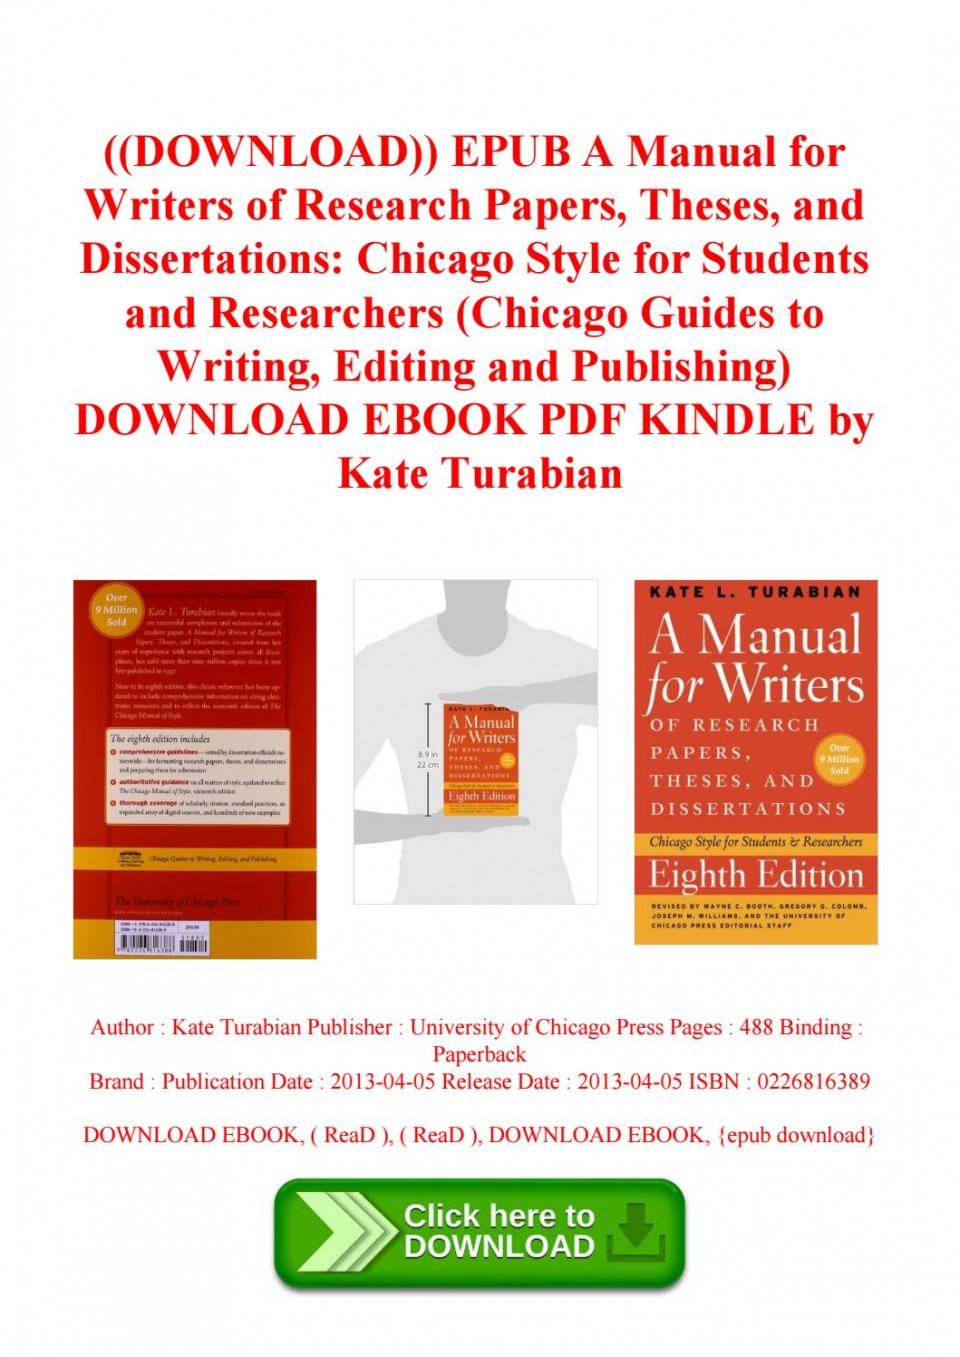 019 Page 1 Manual For Writers Of Researchs Theses And Dissertations Turabian Amazing A Research Papers Pdf 960